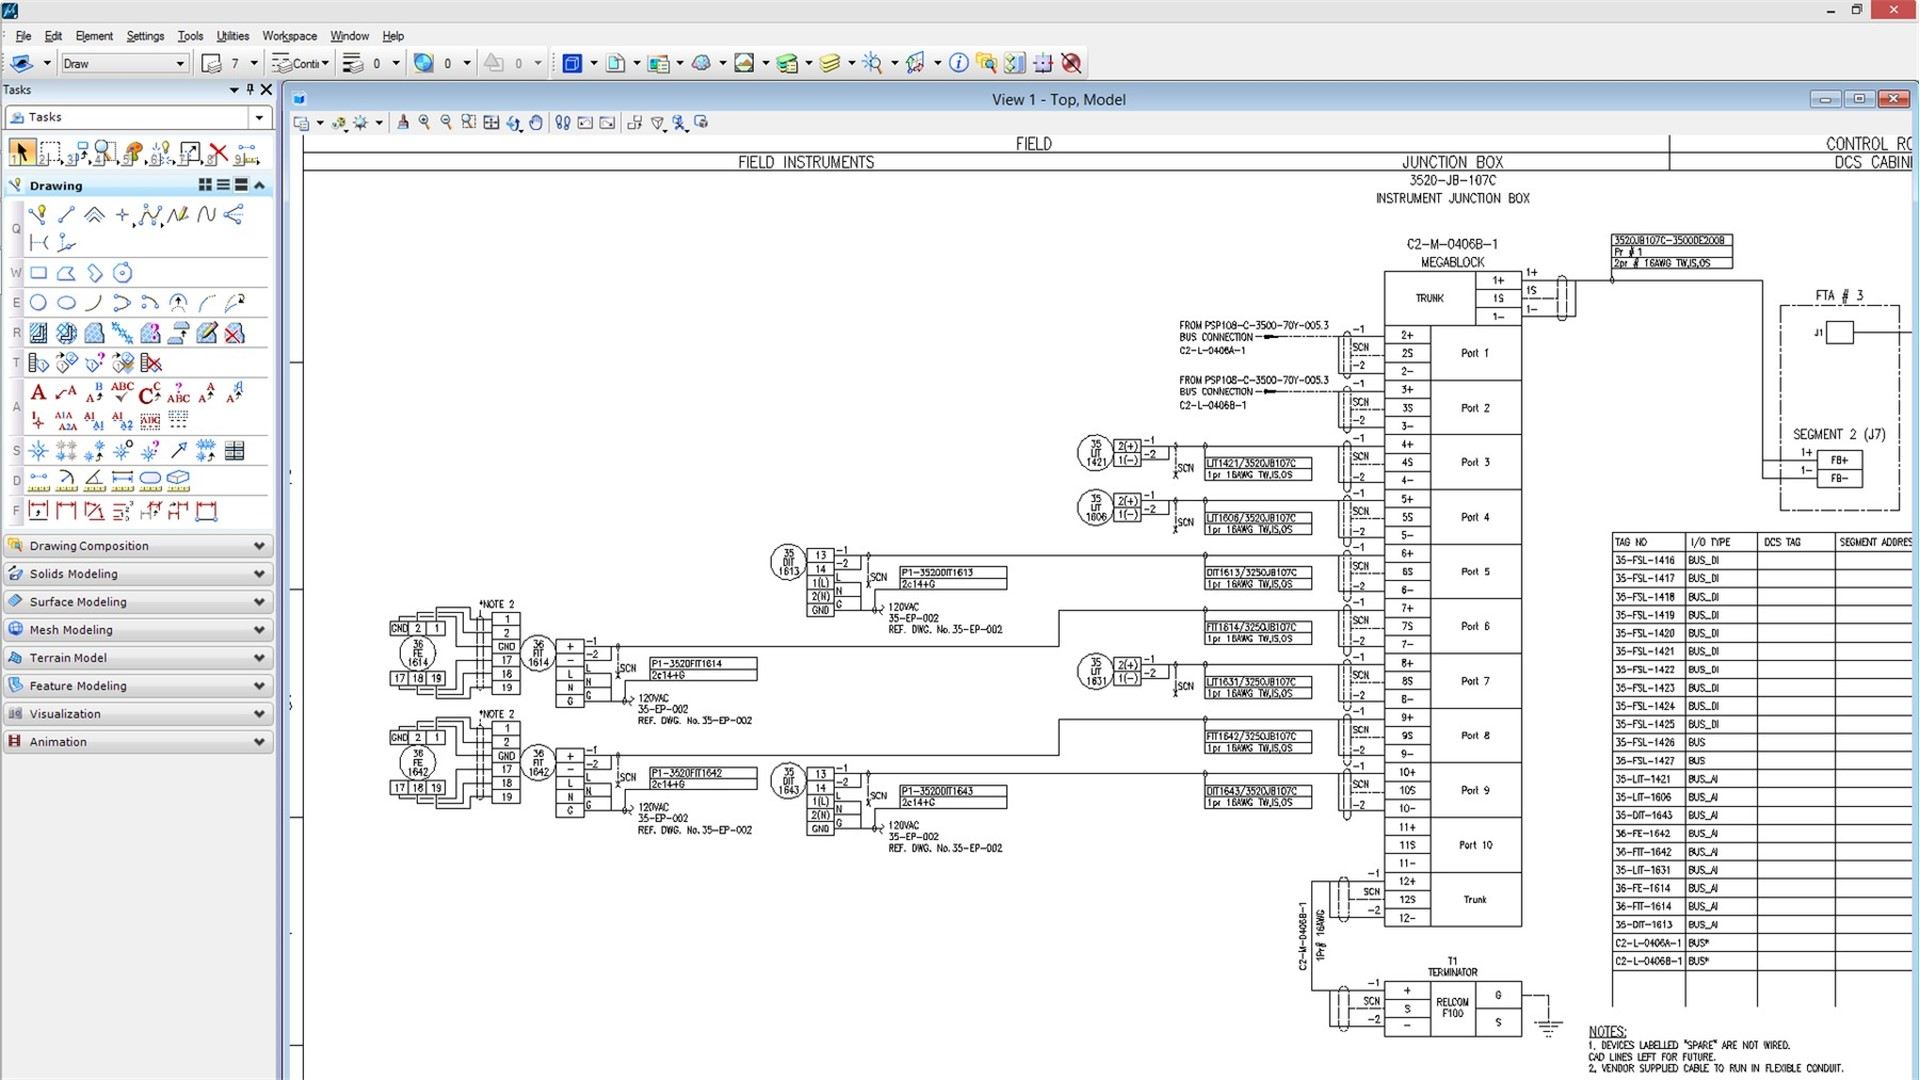 process plant control system design software